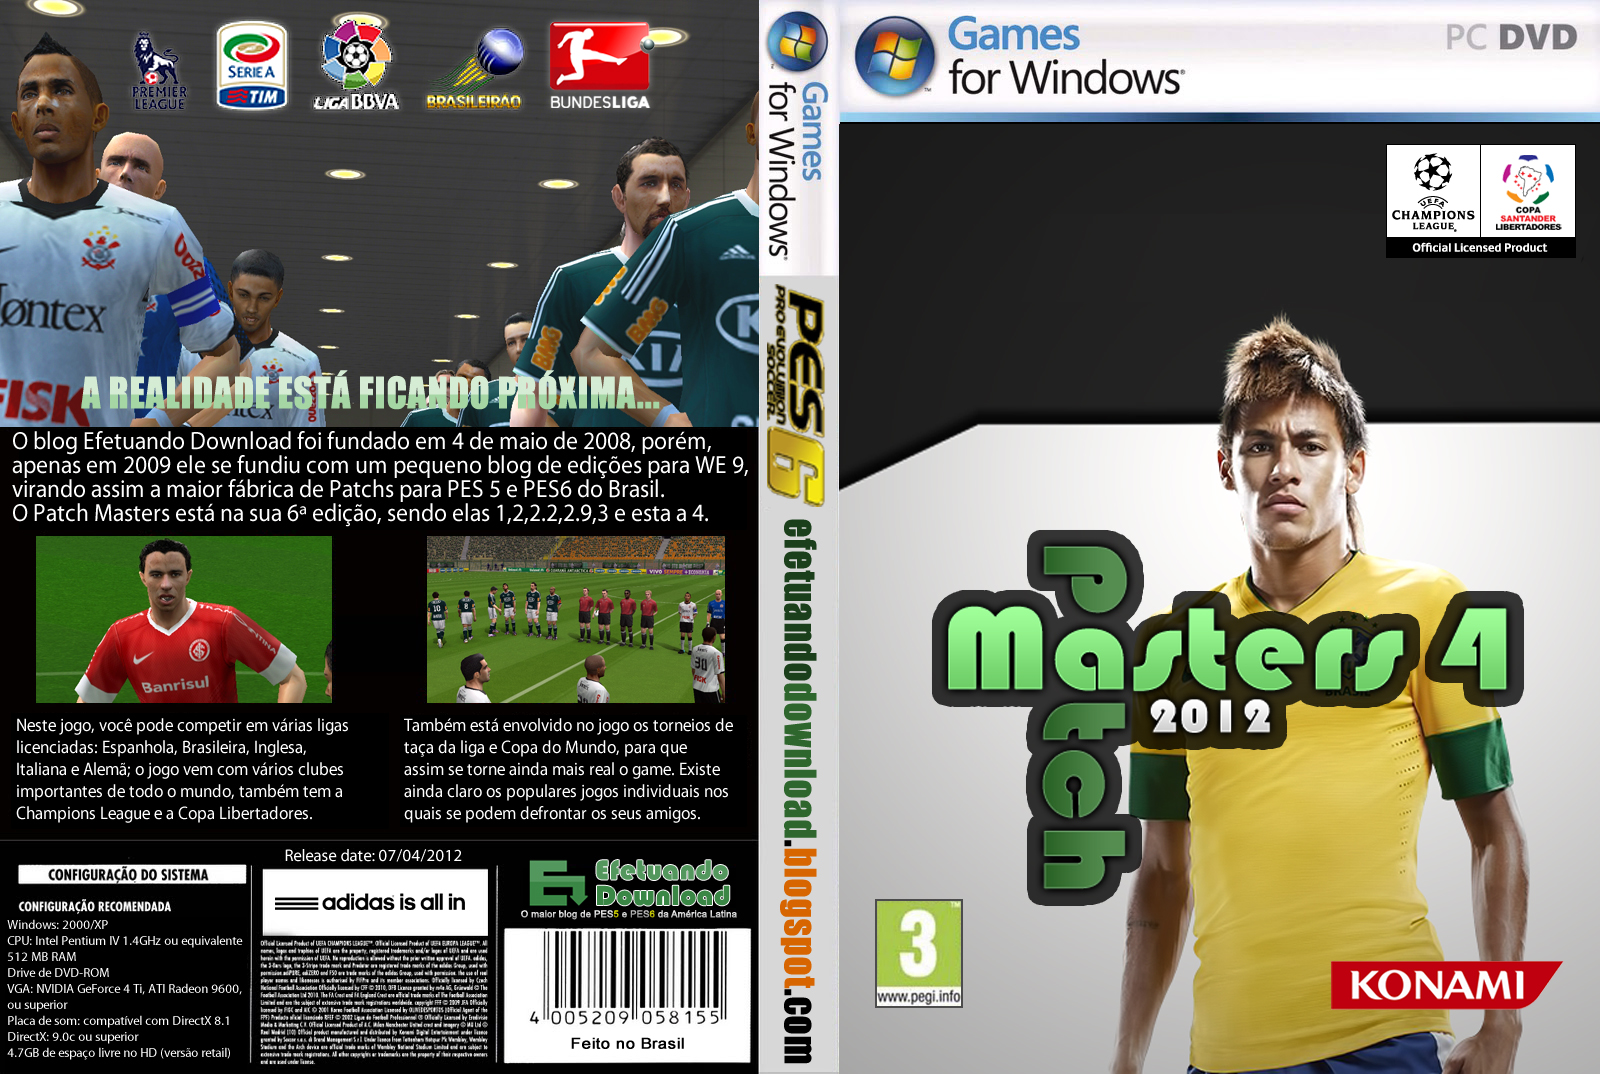 Efetuando Download: [PES 6] Patch Masters 4 (2012)